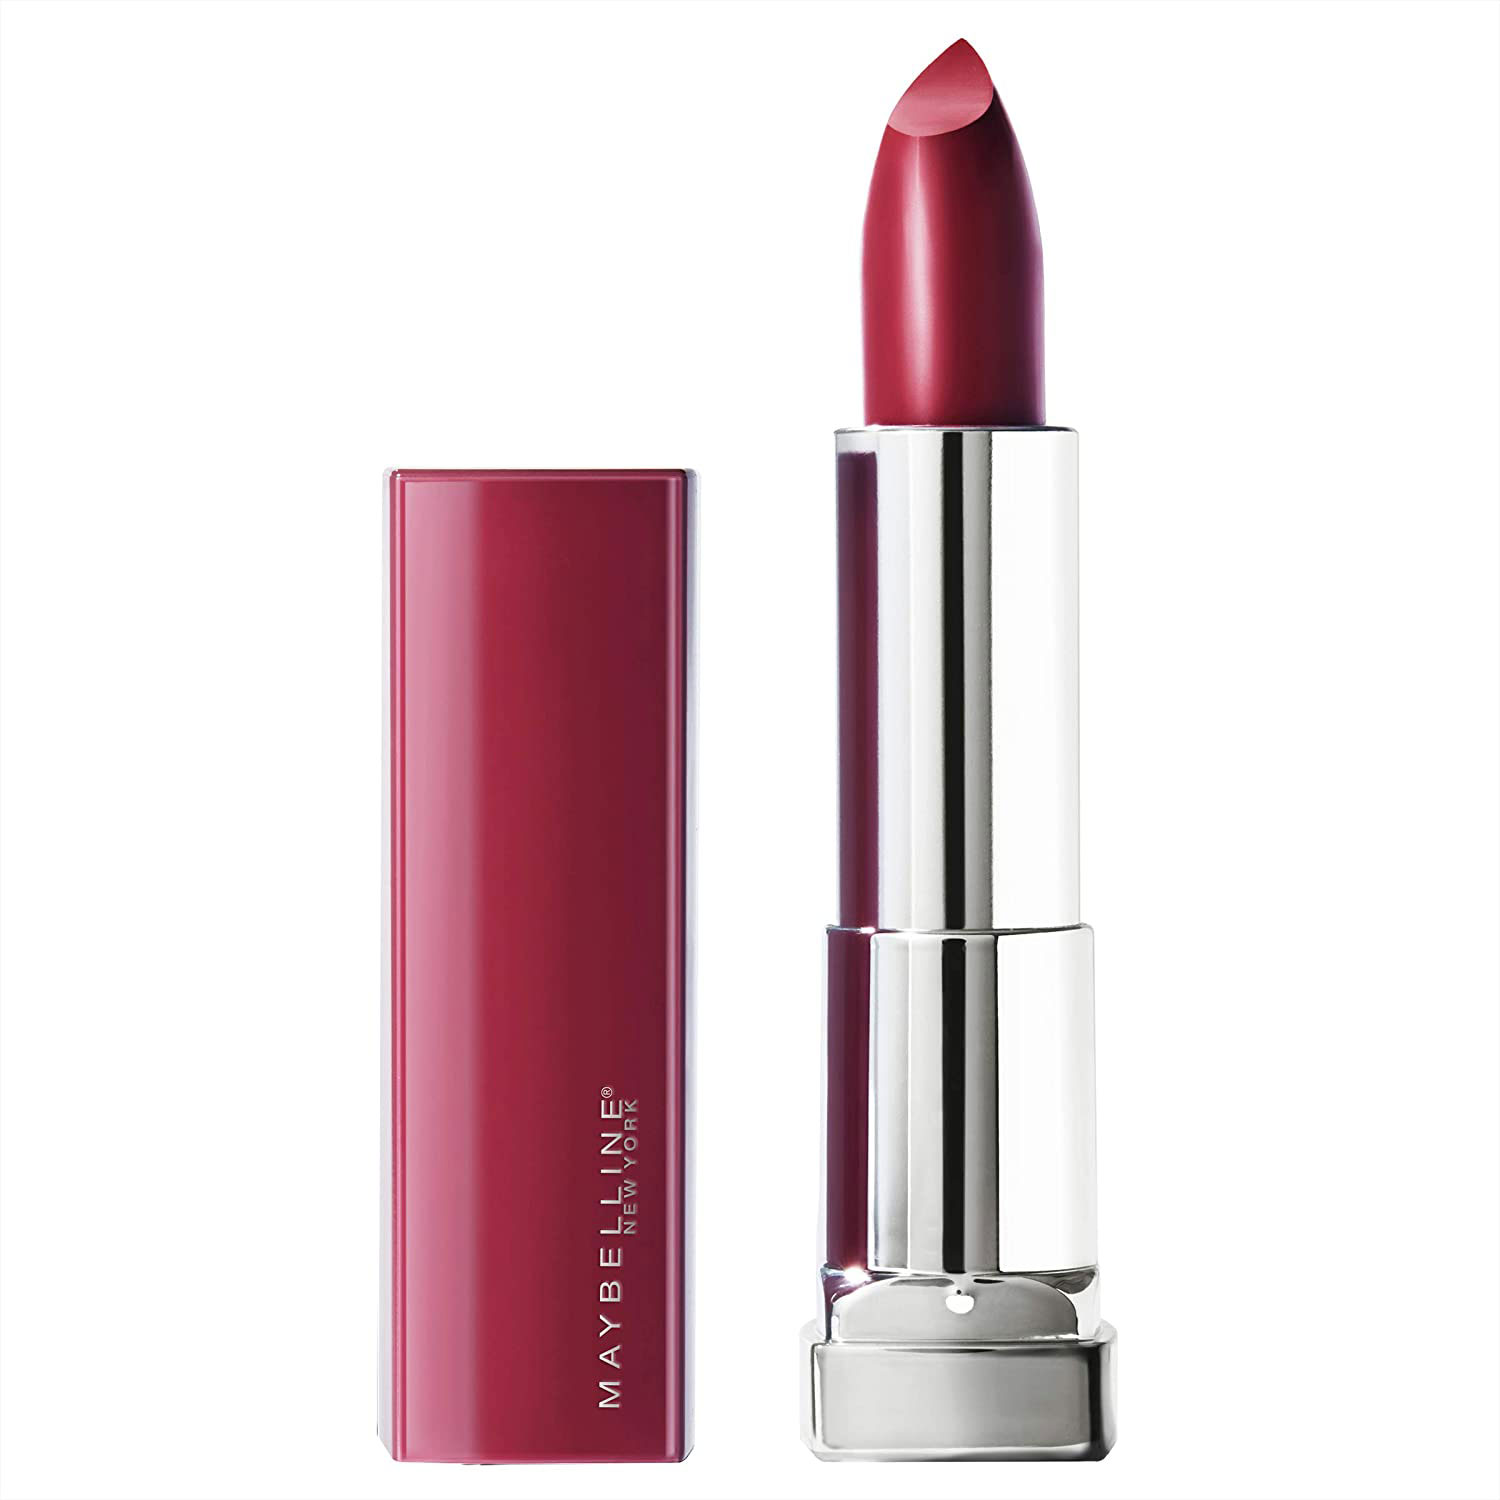 Maybelline New York Color Sensational Made for All Lipstick Plum for Me